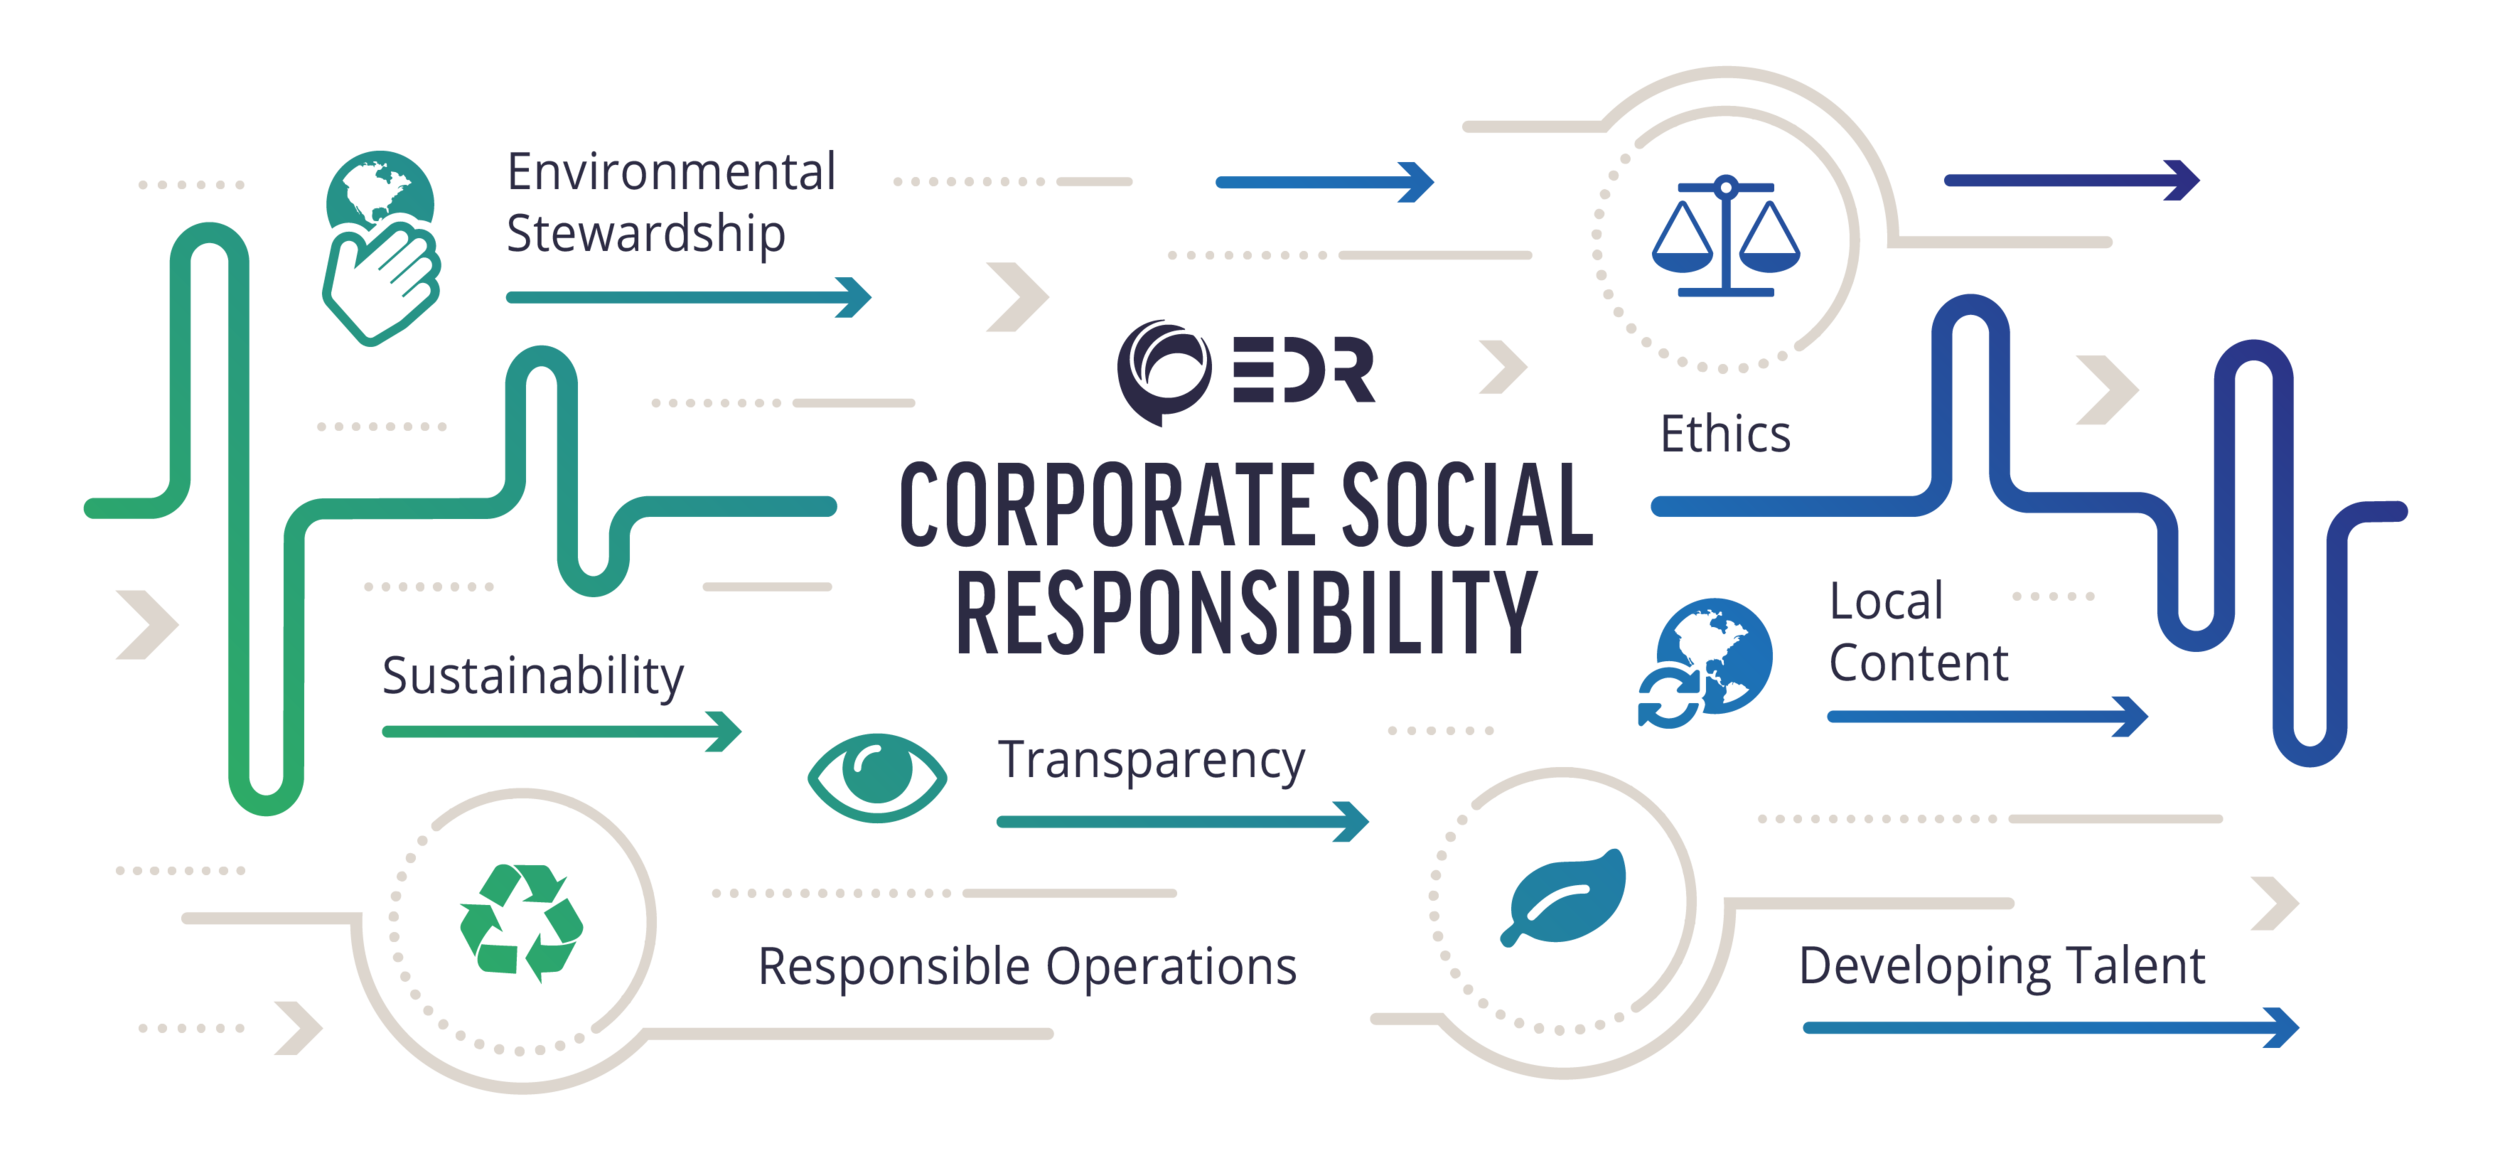 EDR Corporate Social Responsibility graphic